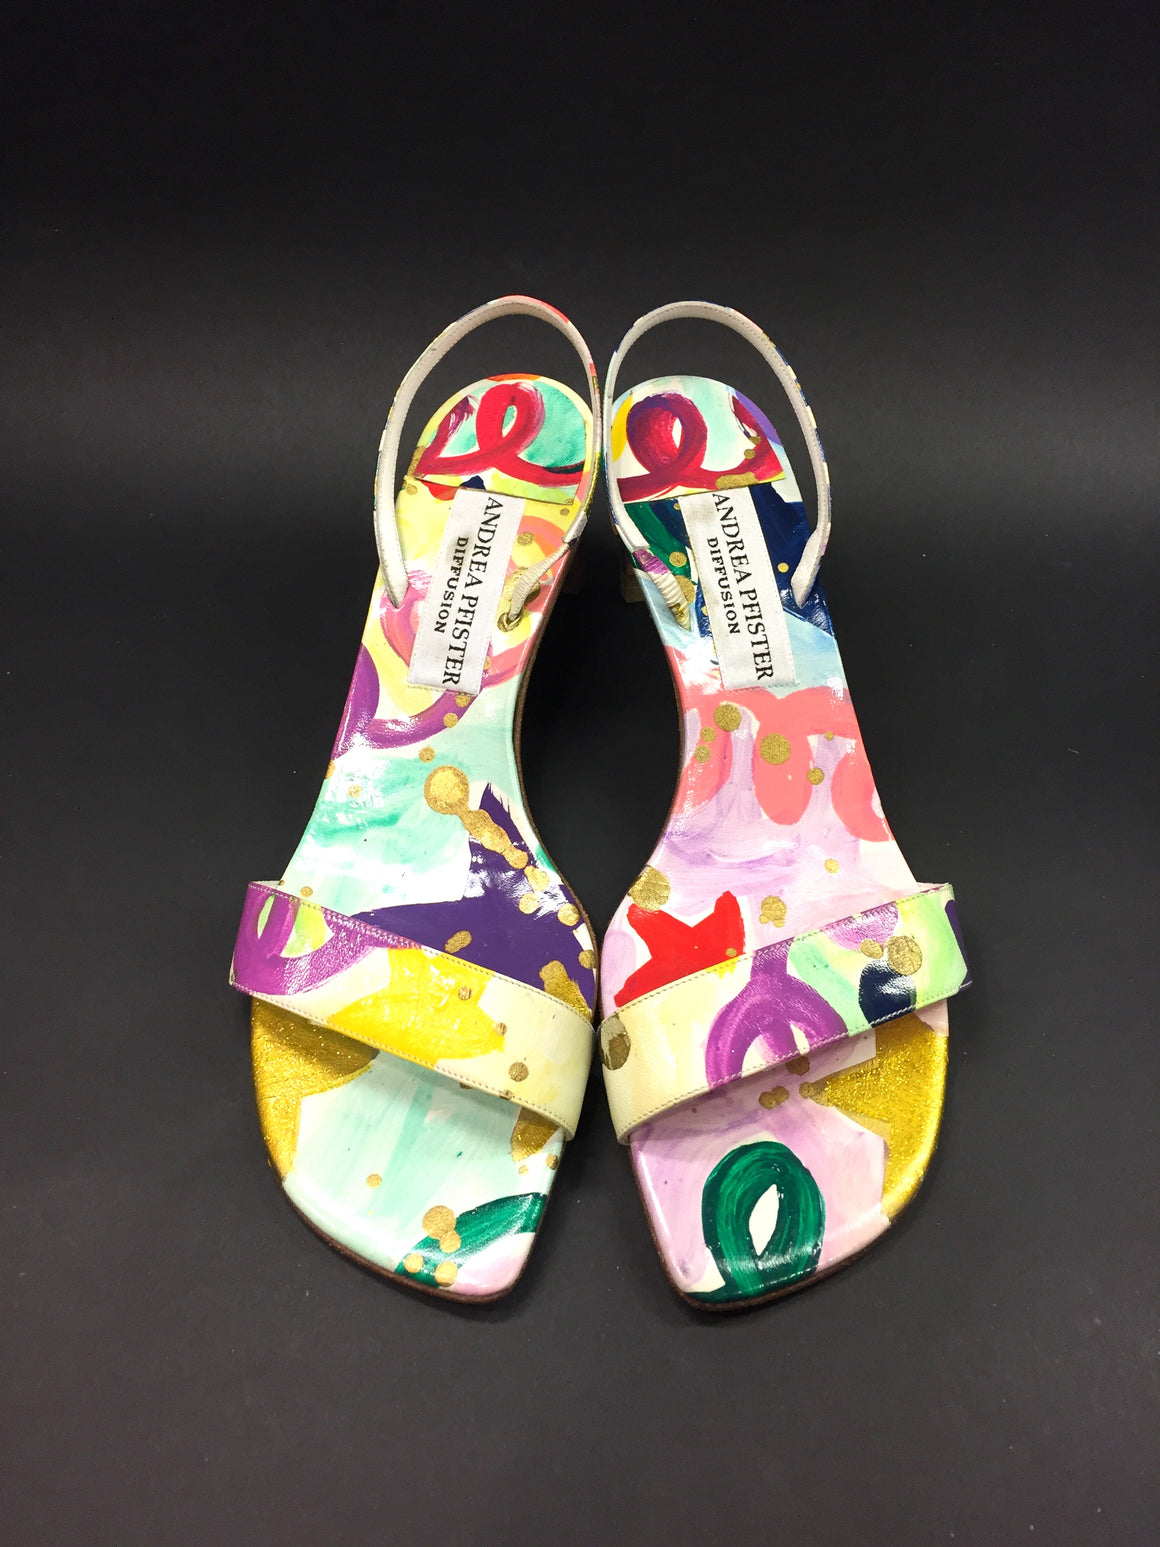 Vintage ANDREA PFISTER Multicolor Graffiti-Print Leather Slingback Sandals Sz39.5